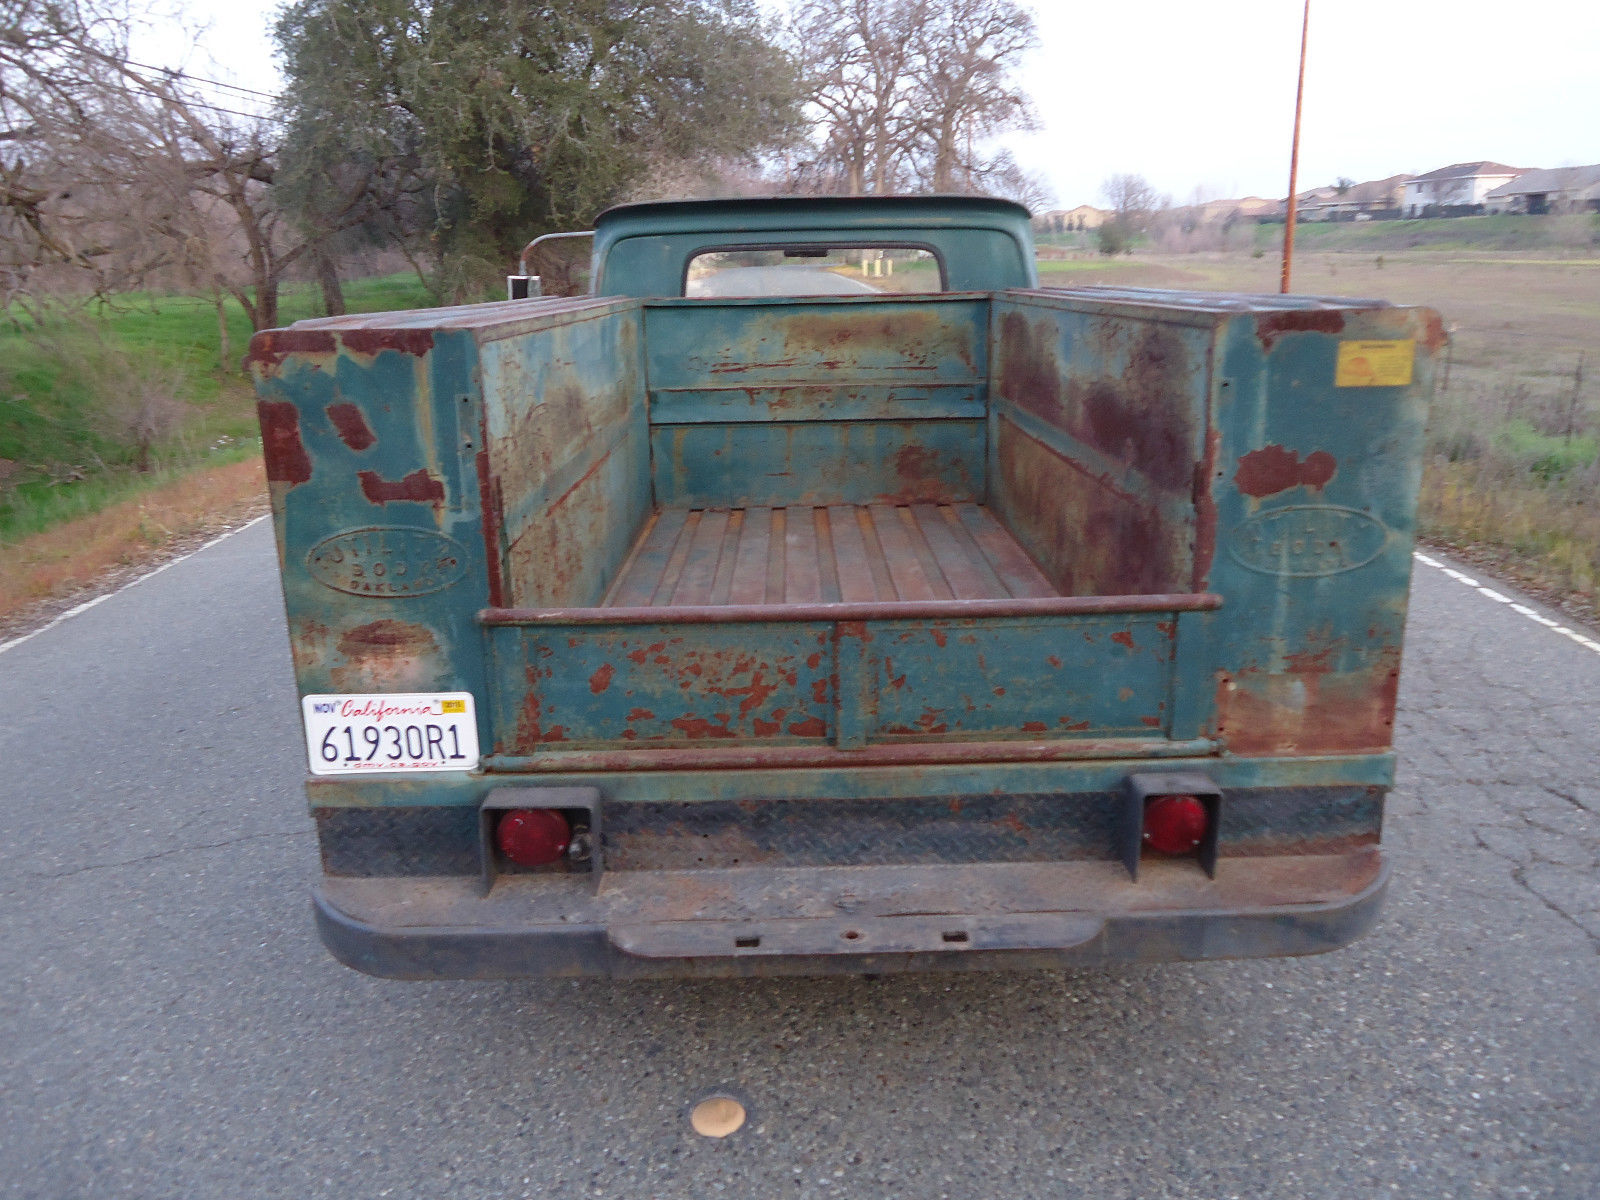 California Native 1961 Chevy Utility Bed Truck With Natural Patina C10 Chevrolet C K Pickup 2500 Cheyenne